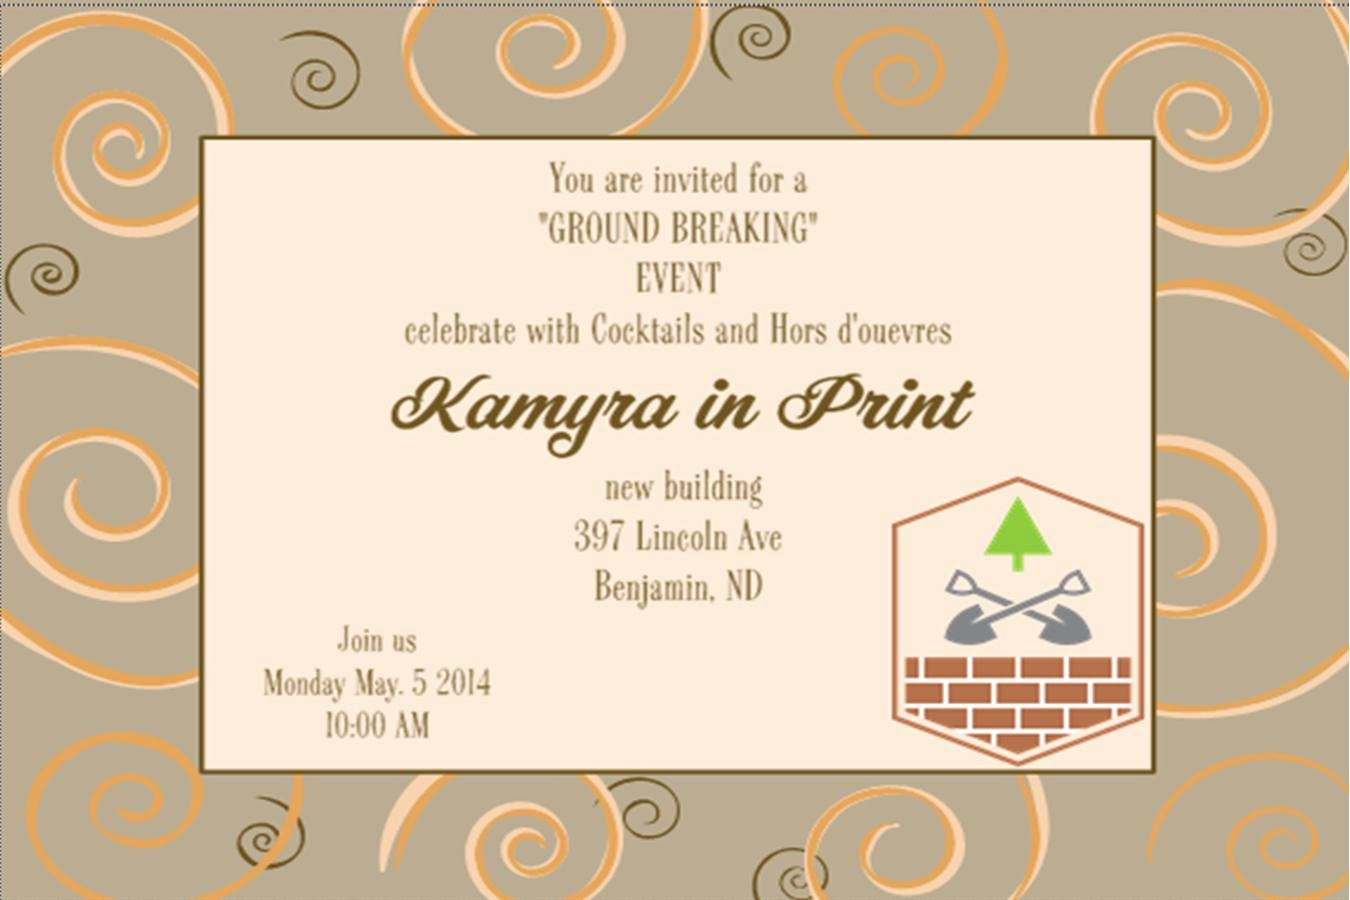 Grand Opening Invitation Template Free Elegant Grand Opening Invitations and Ground Breaking Invitations